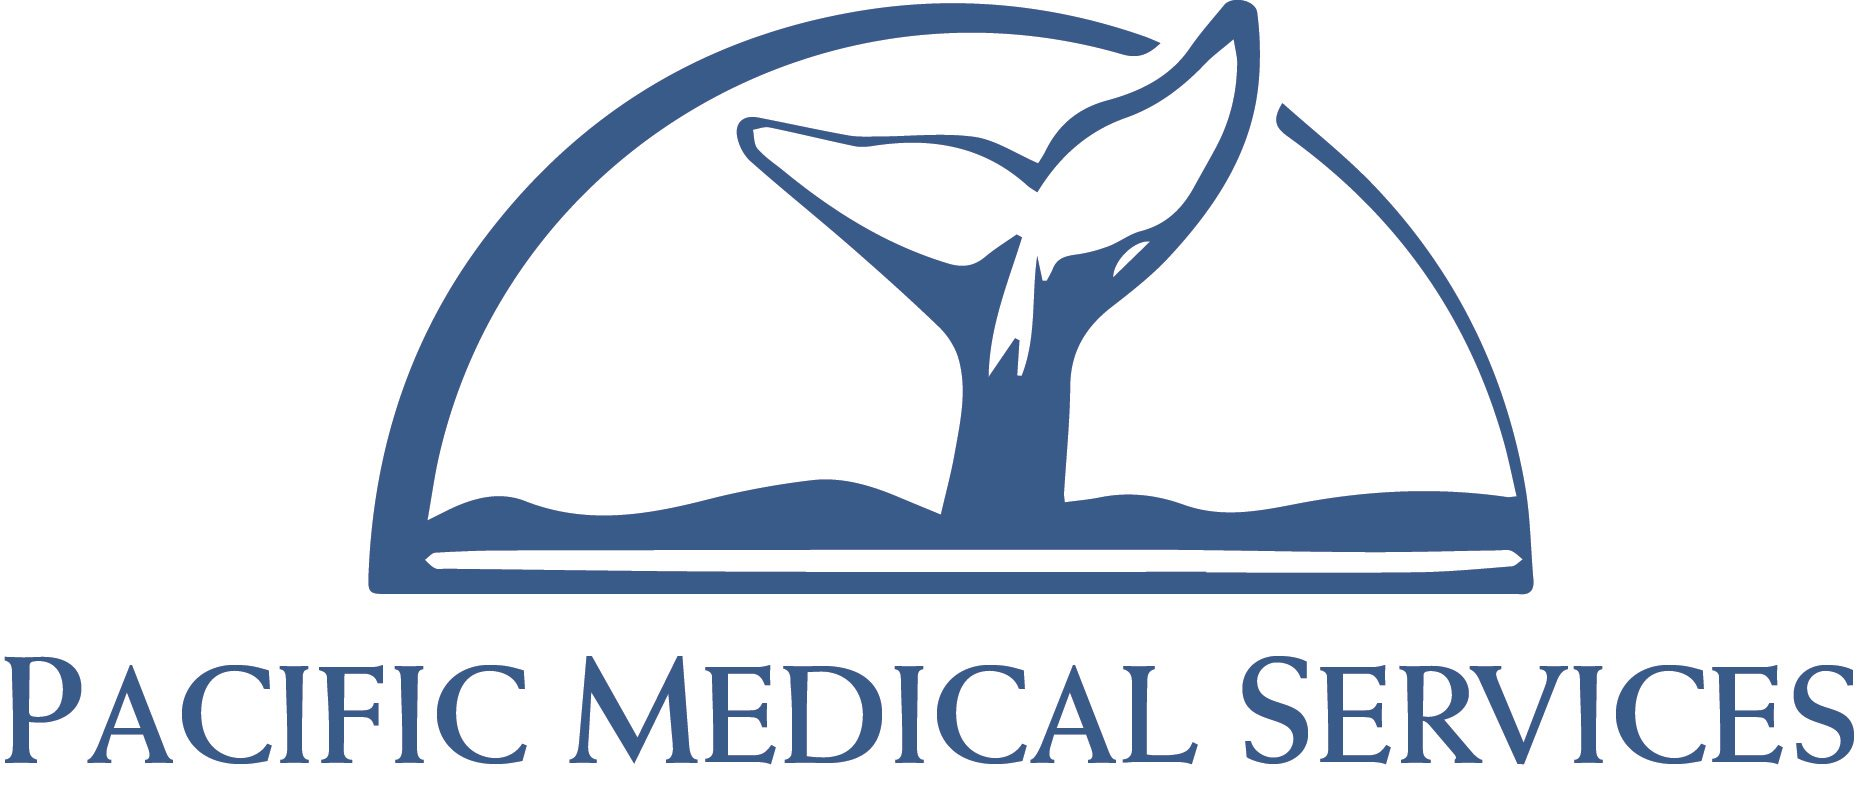 Pacific Medical Services